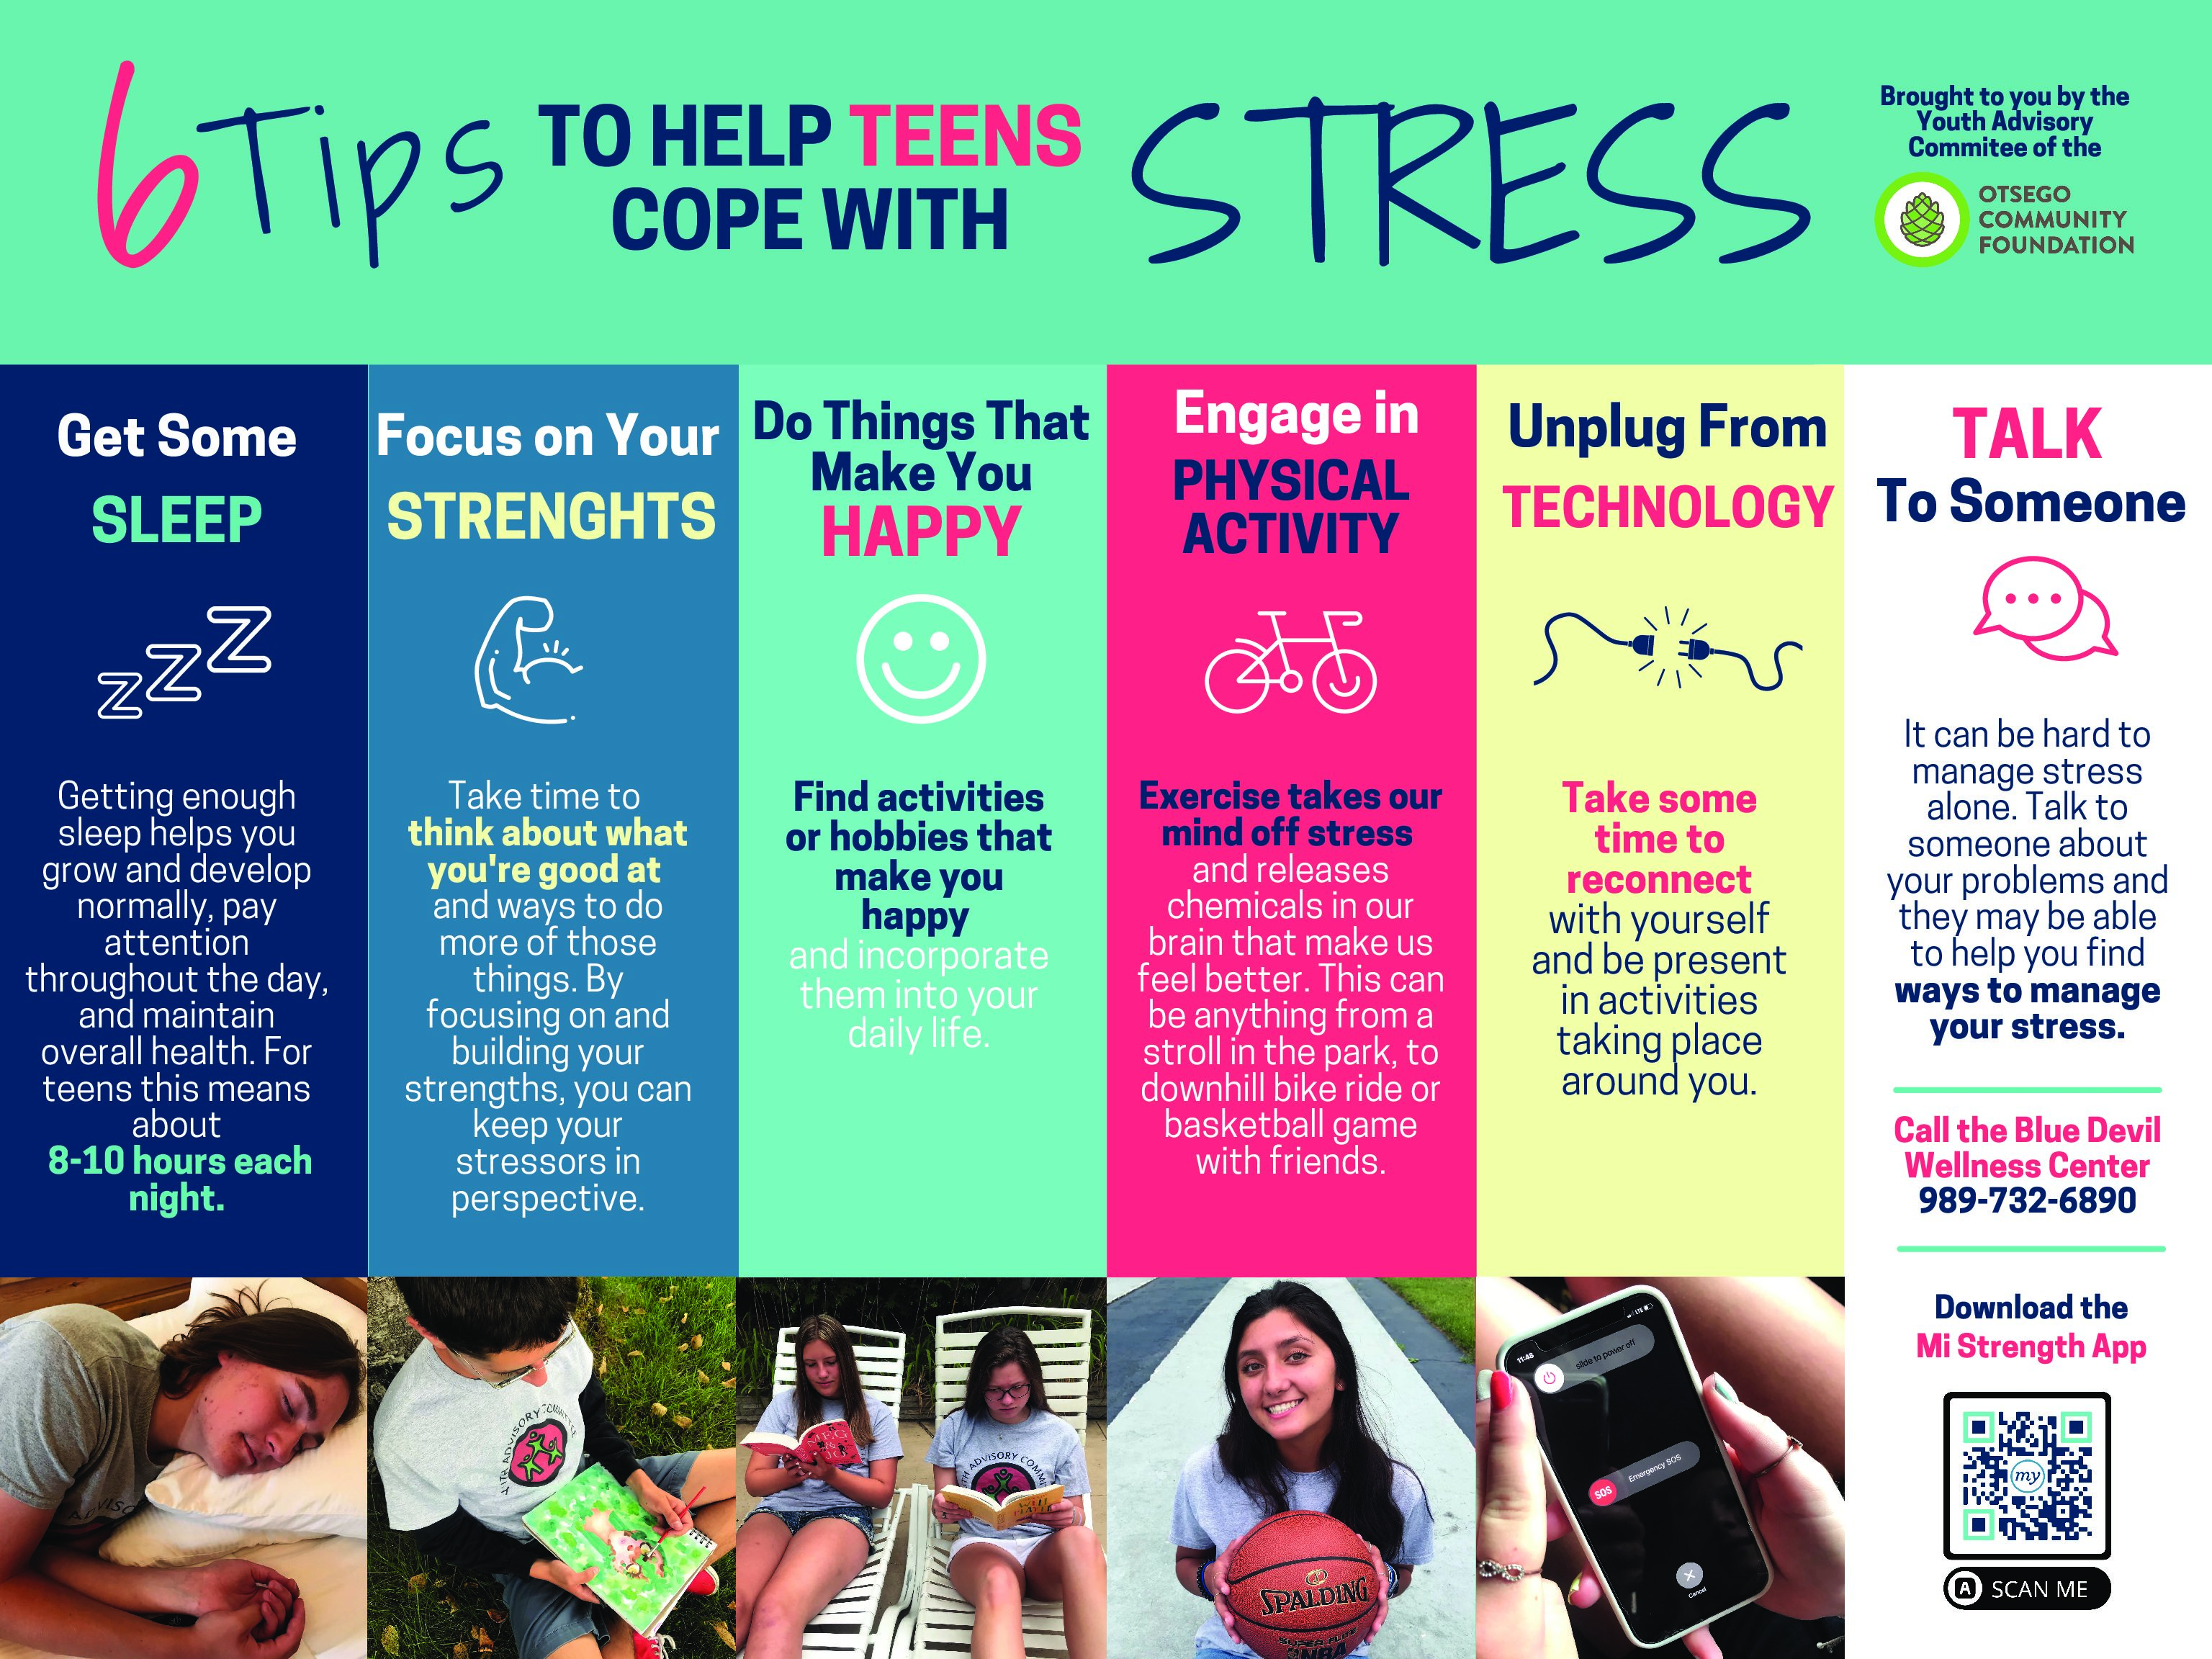 YAC Proactive Grant: 6 Tips to Help Teens Cope With Stress